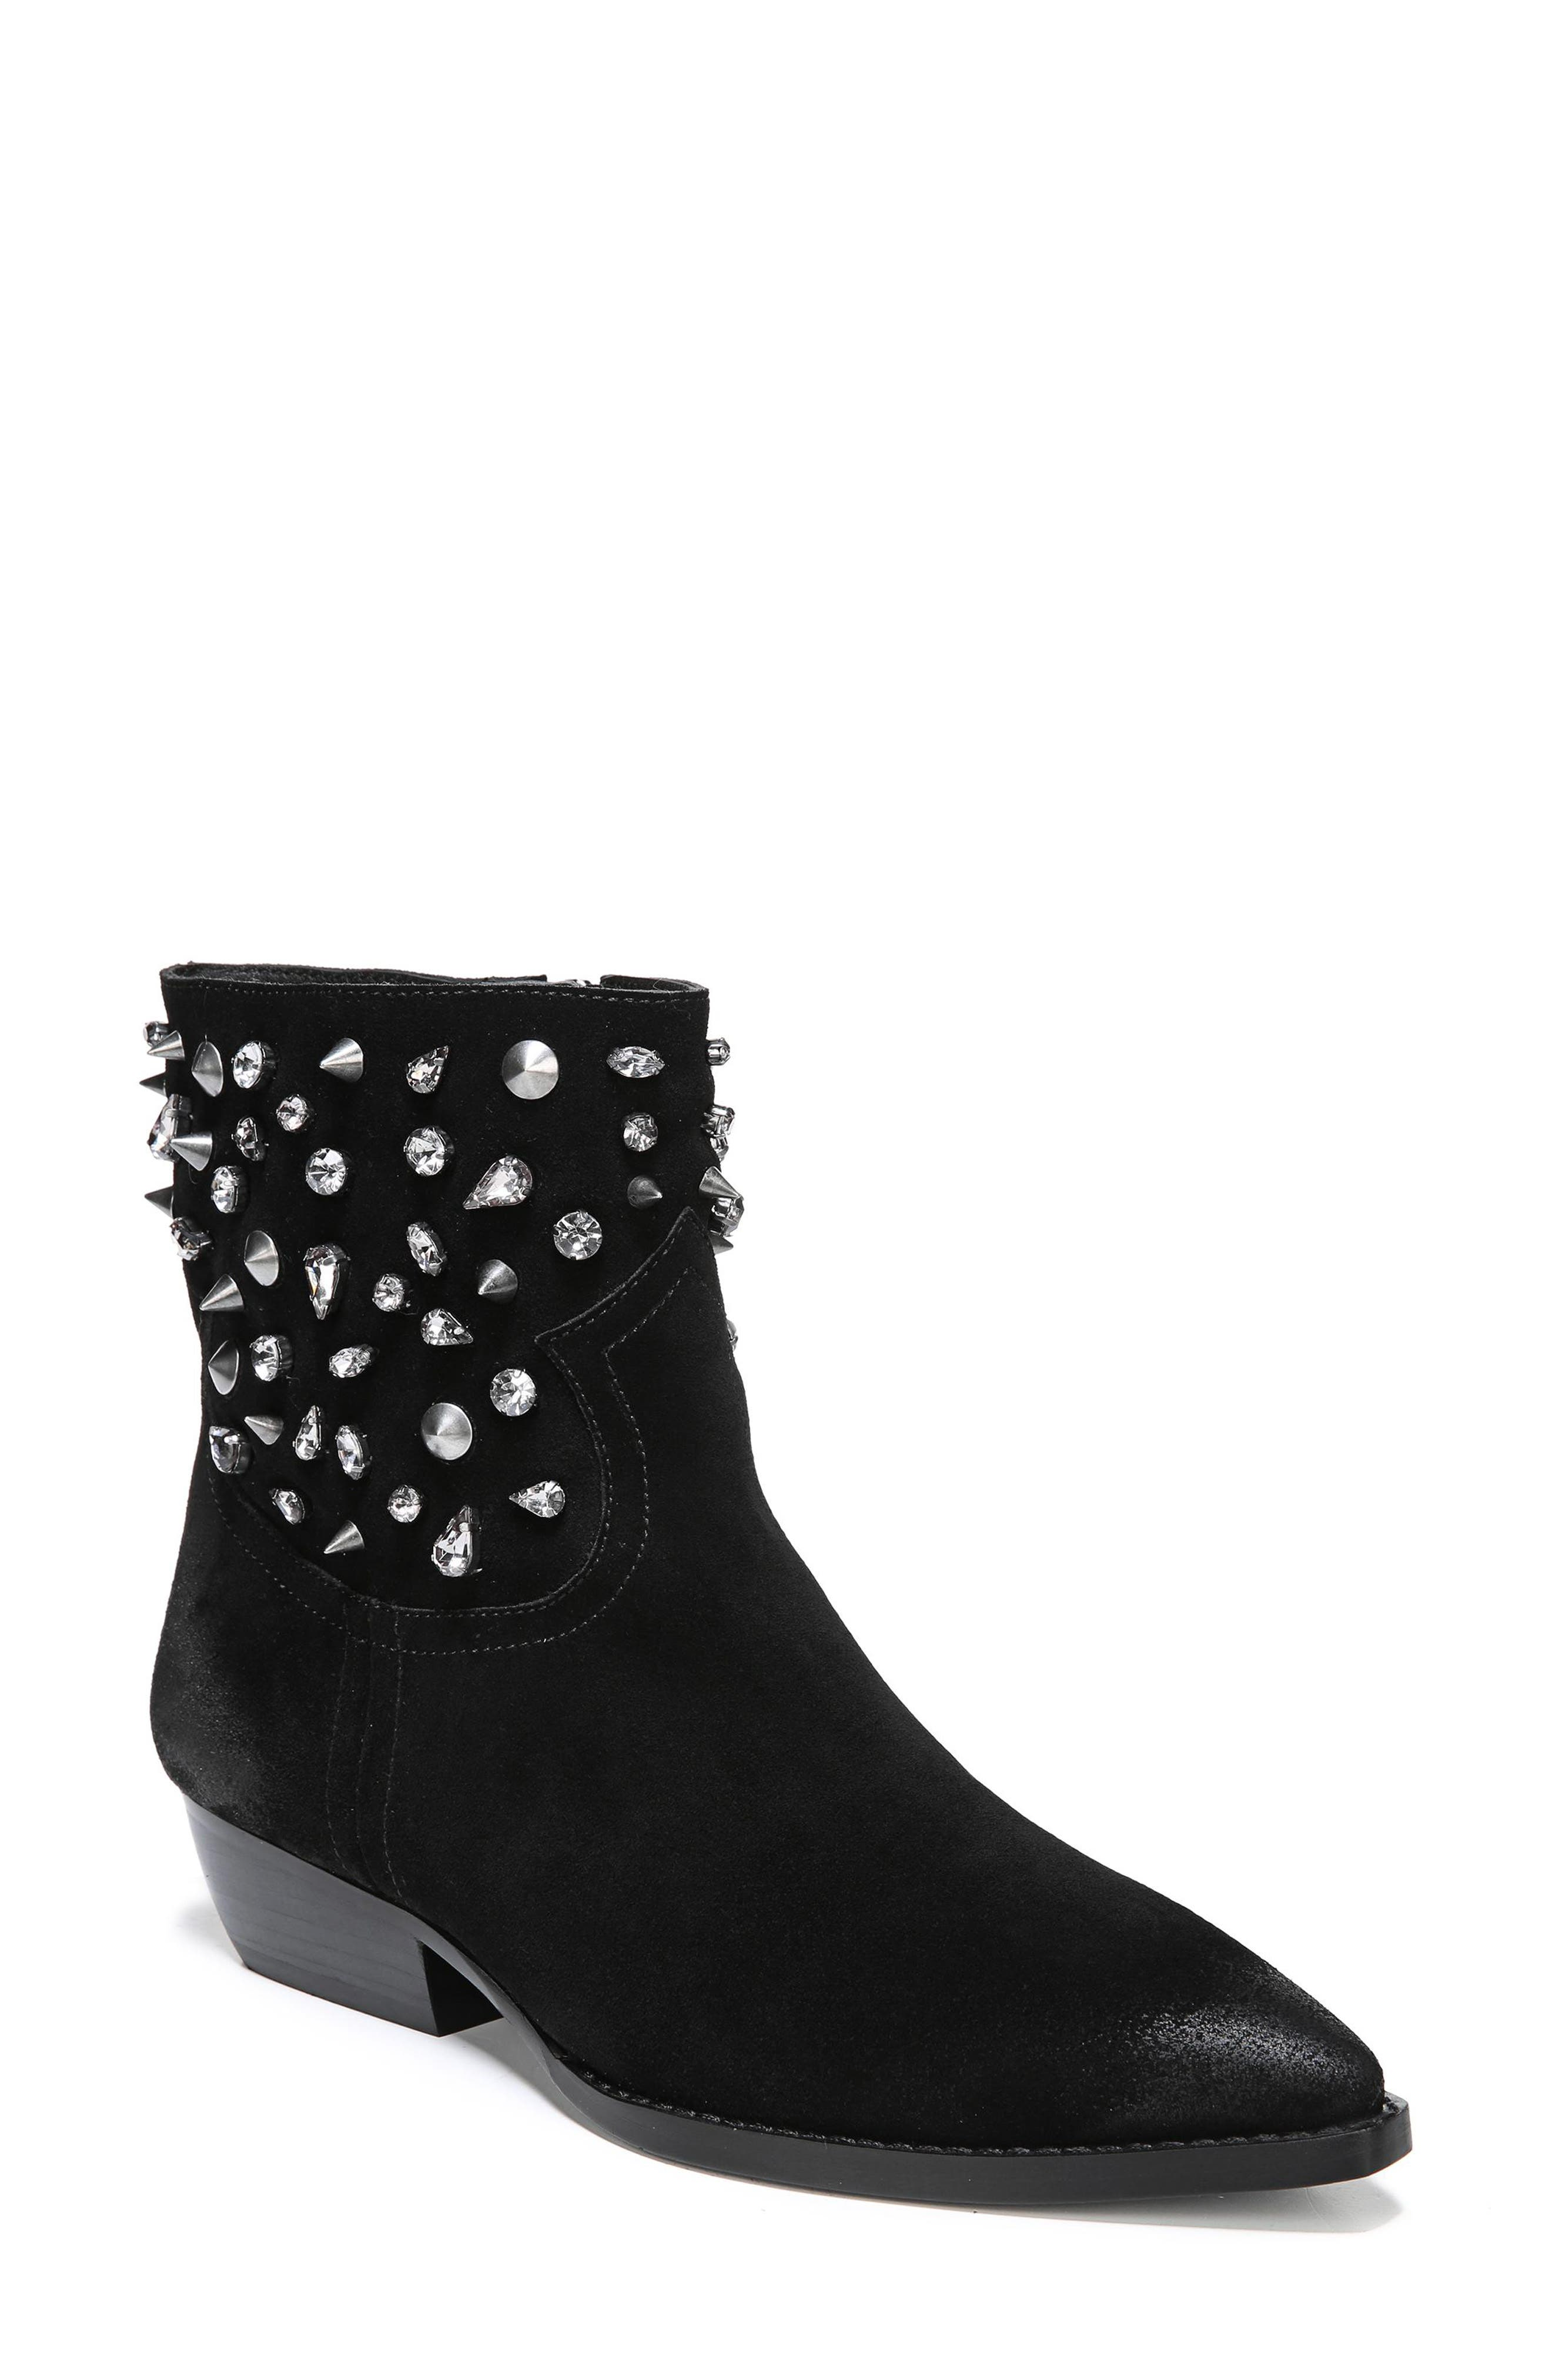 Sam Edelman Avril Embellished Bootie, Black